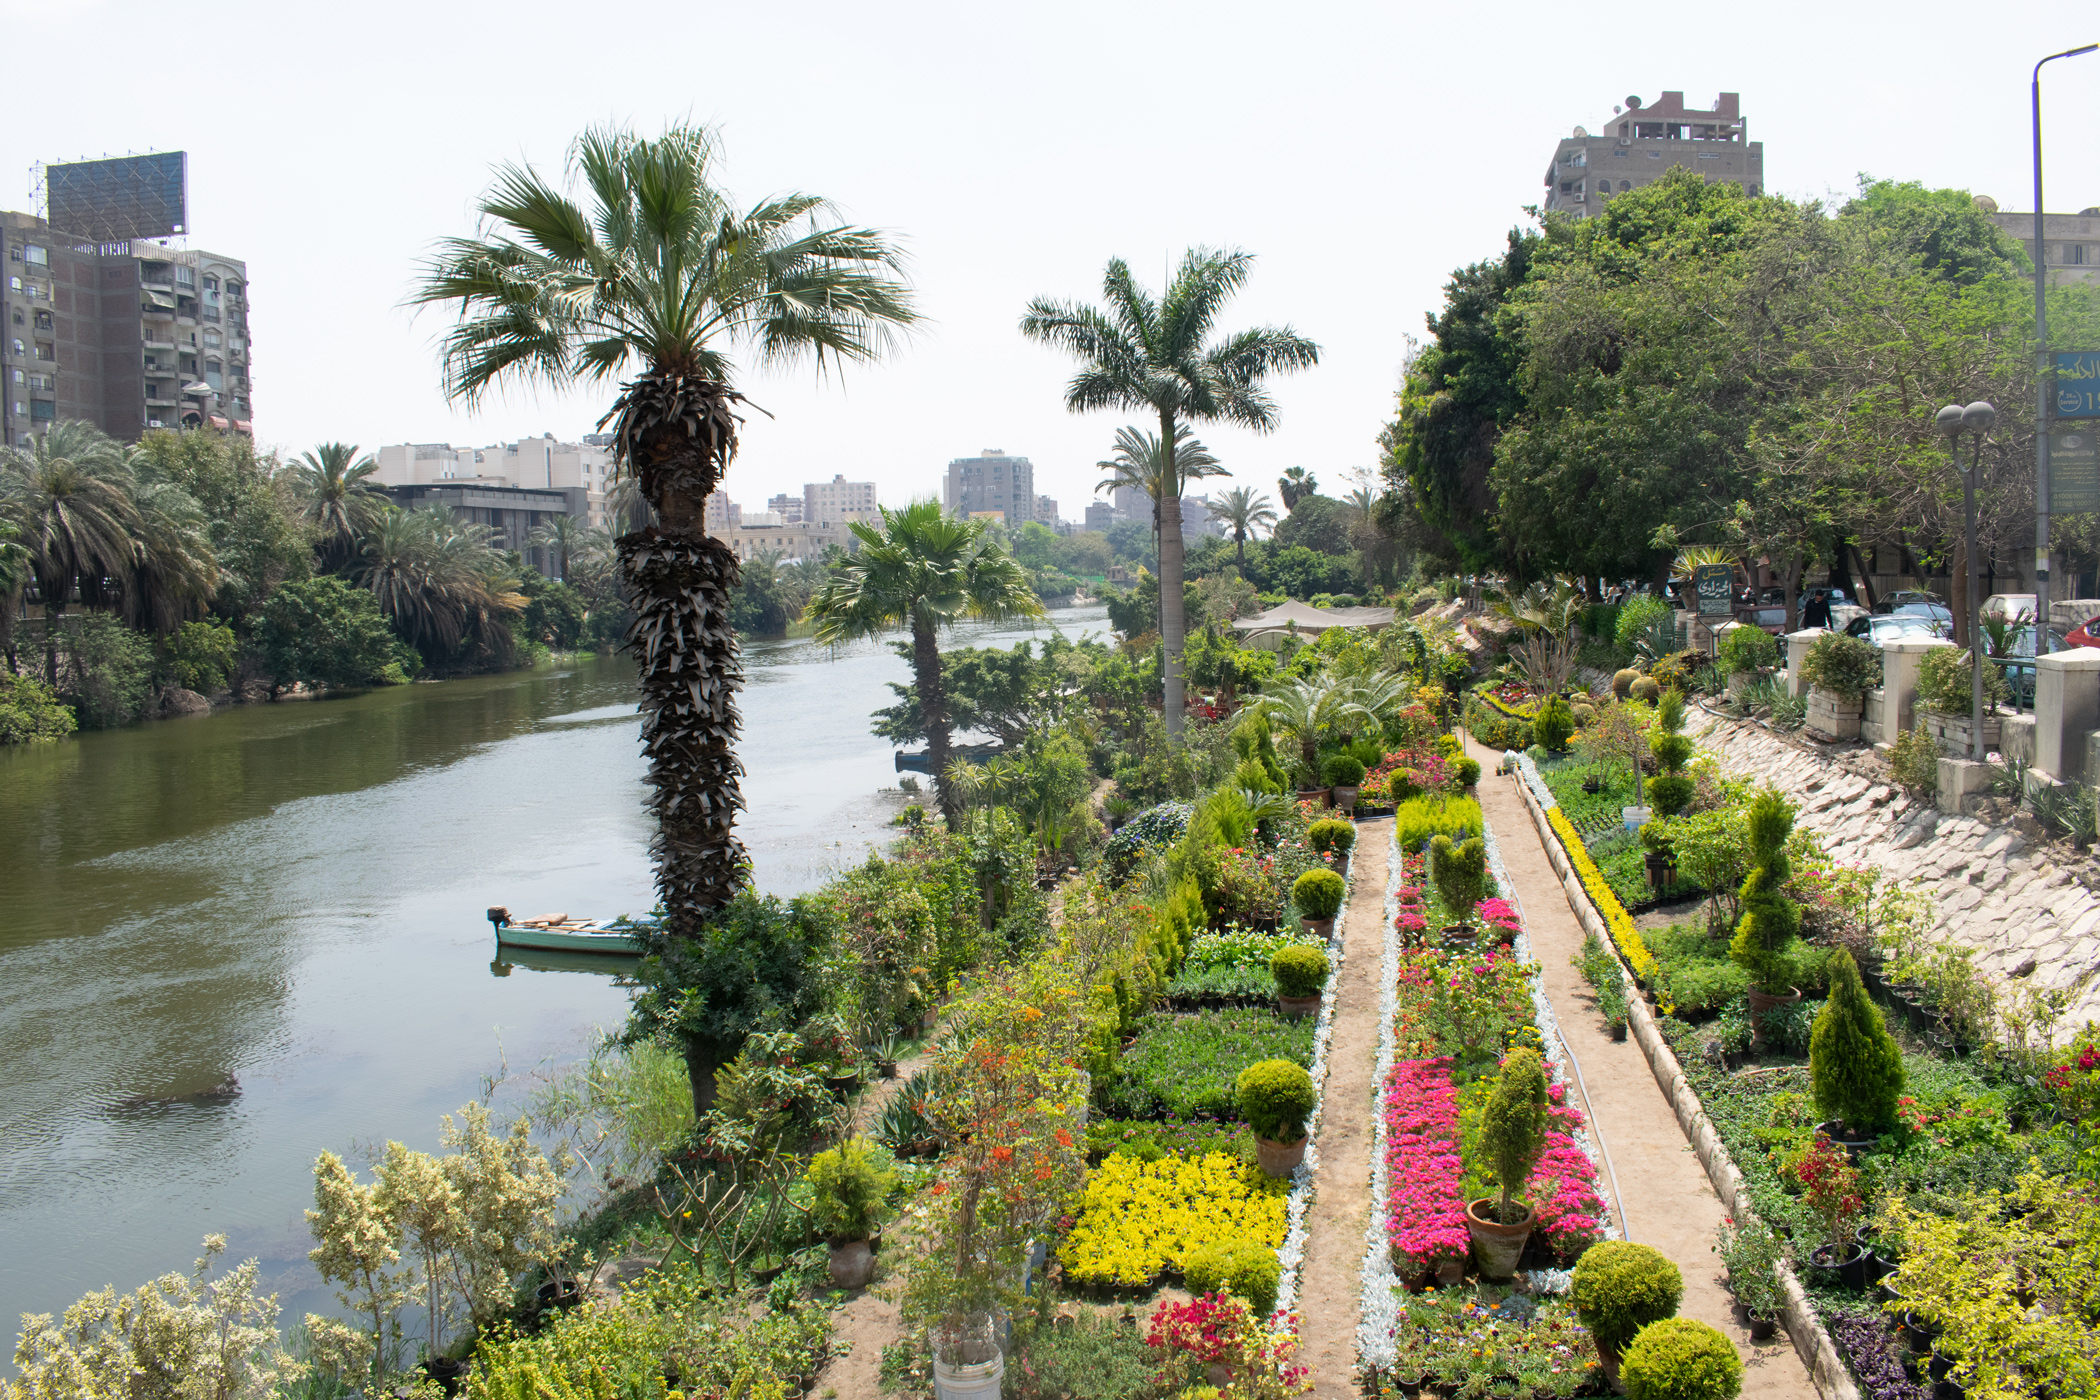 One of the Nile's beautiful riverside gardens.